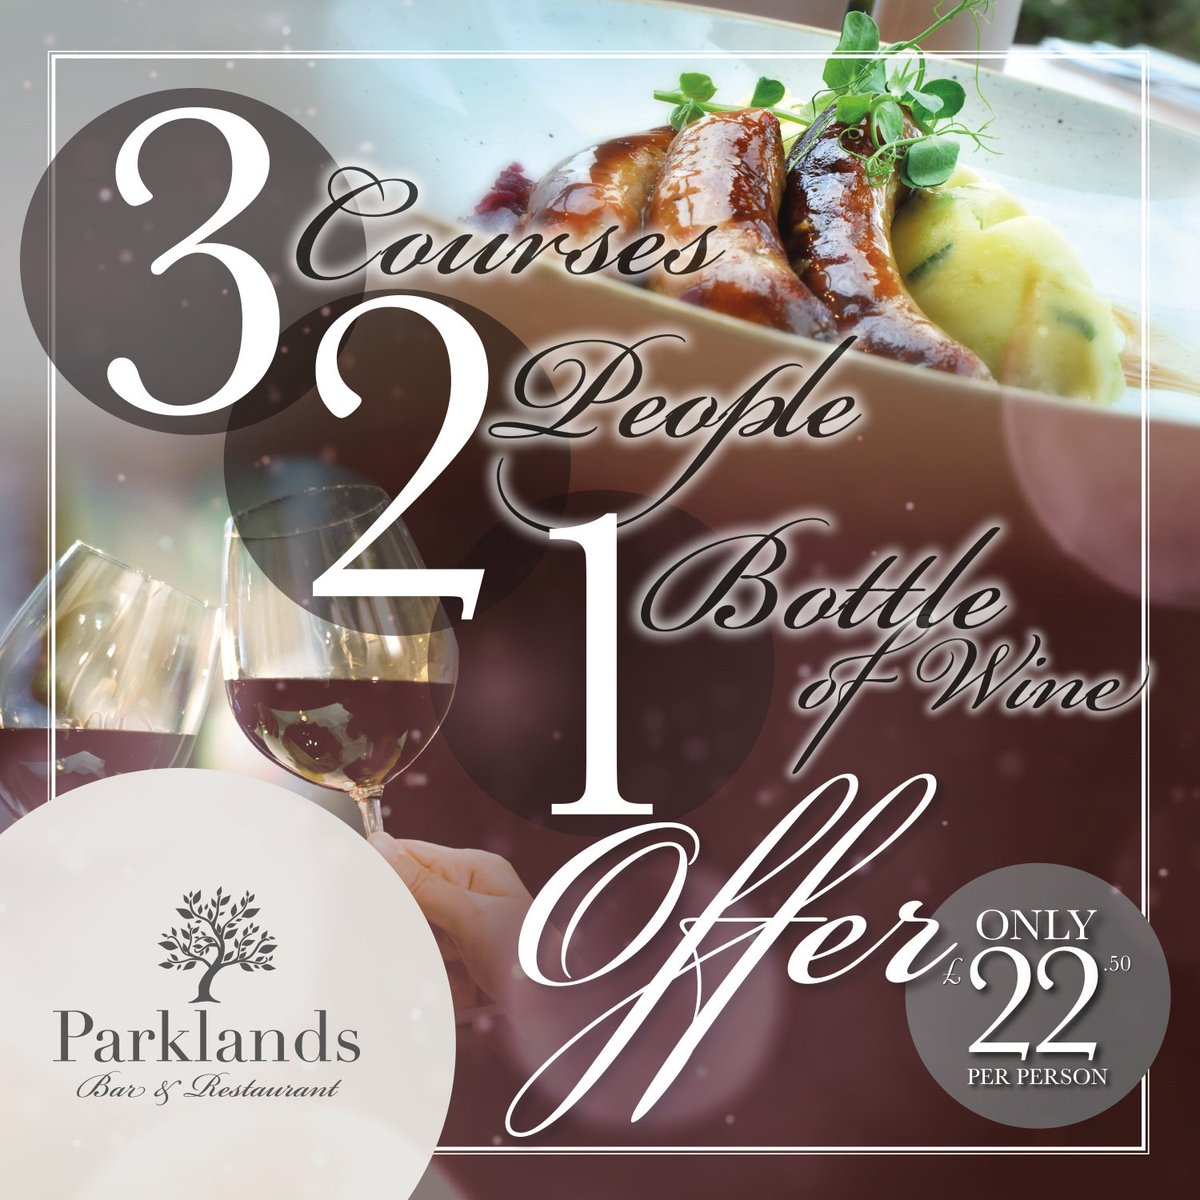 Looking for a last minute treat for Valentines Day? Indulge in a delicious 3-course menu and a bottle of wine for only £22.50pp. Find out more http://socsi.in/C35ki